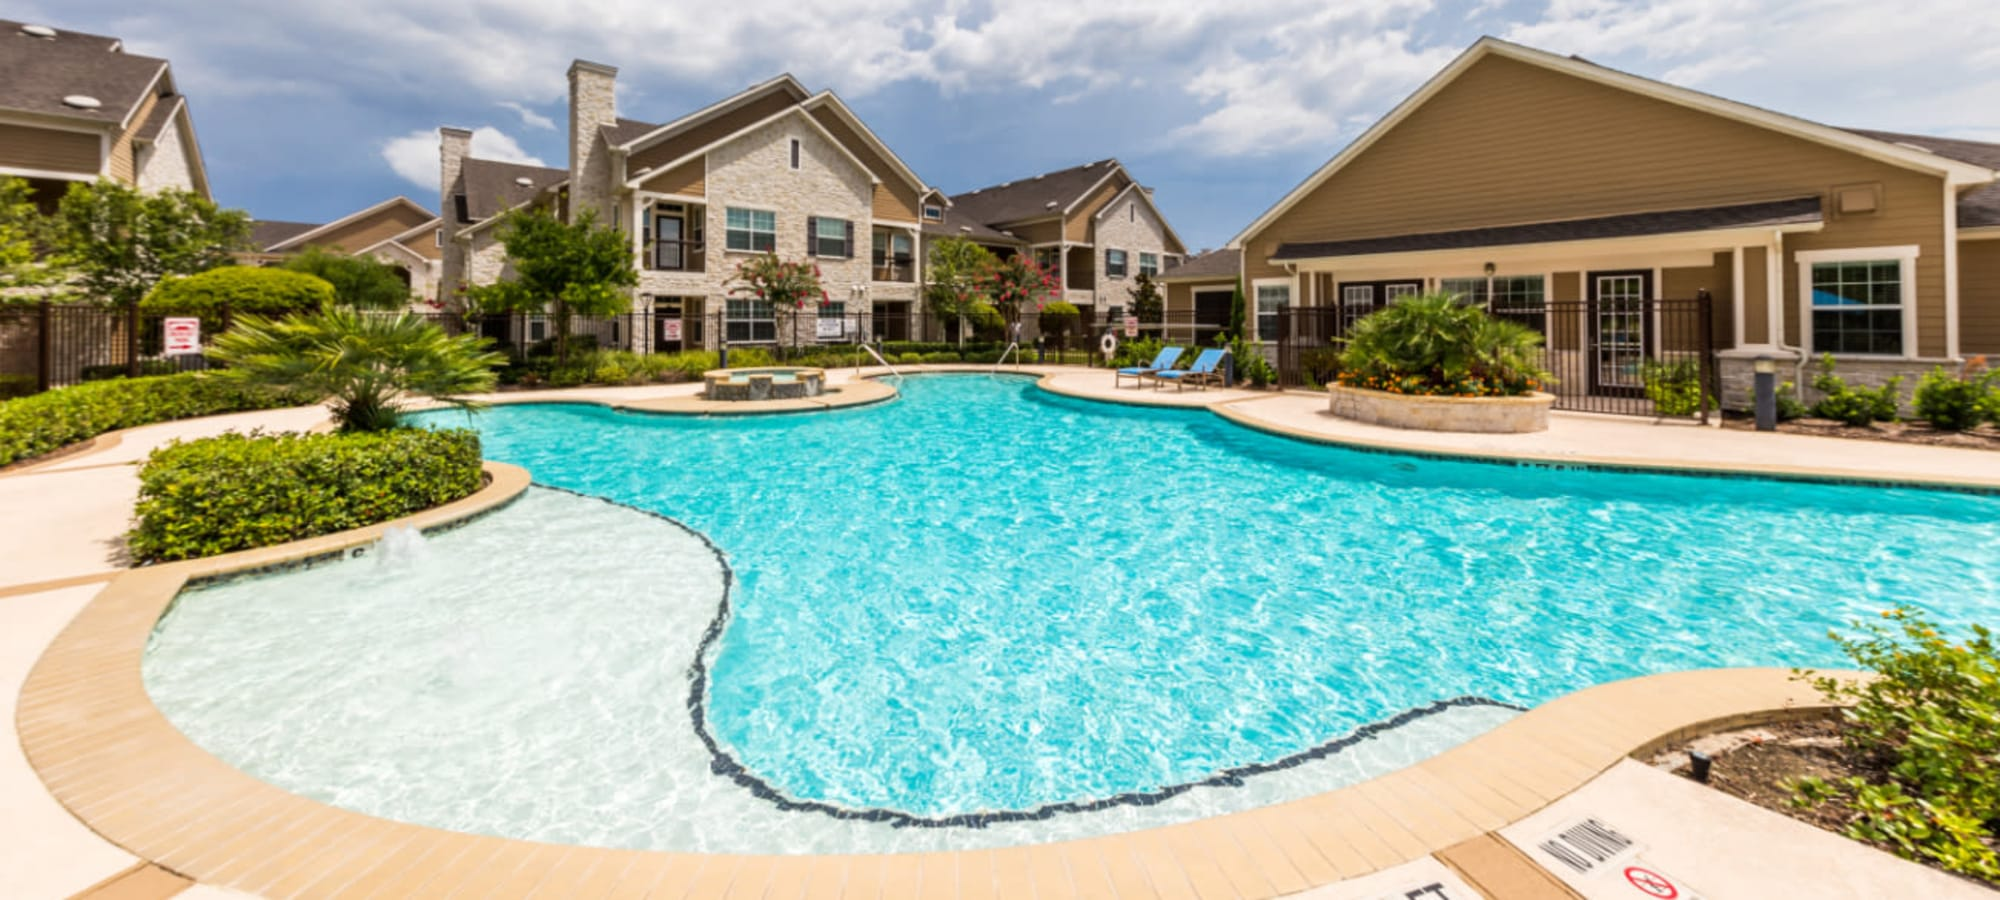 Apply to live at Marquis at Cinco Ranch in Katy, Texas